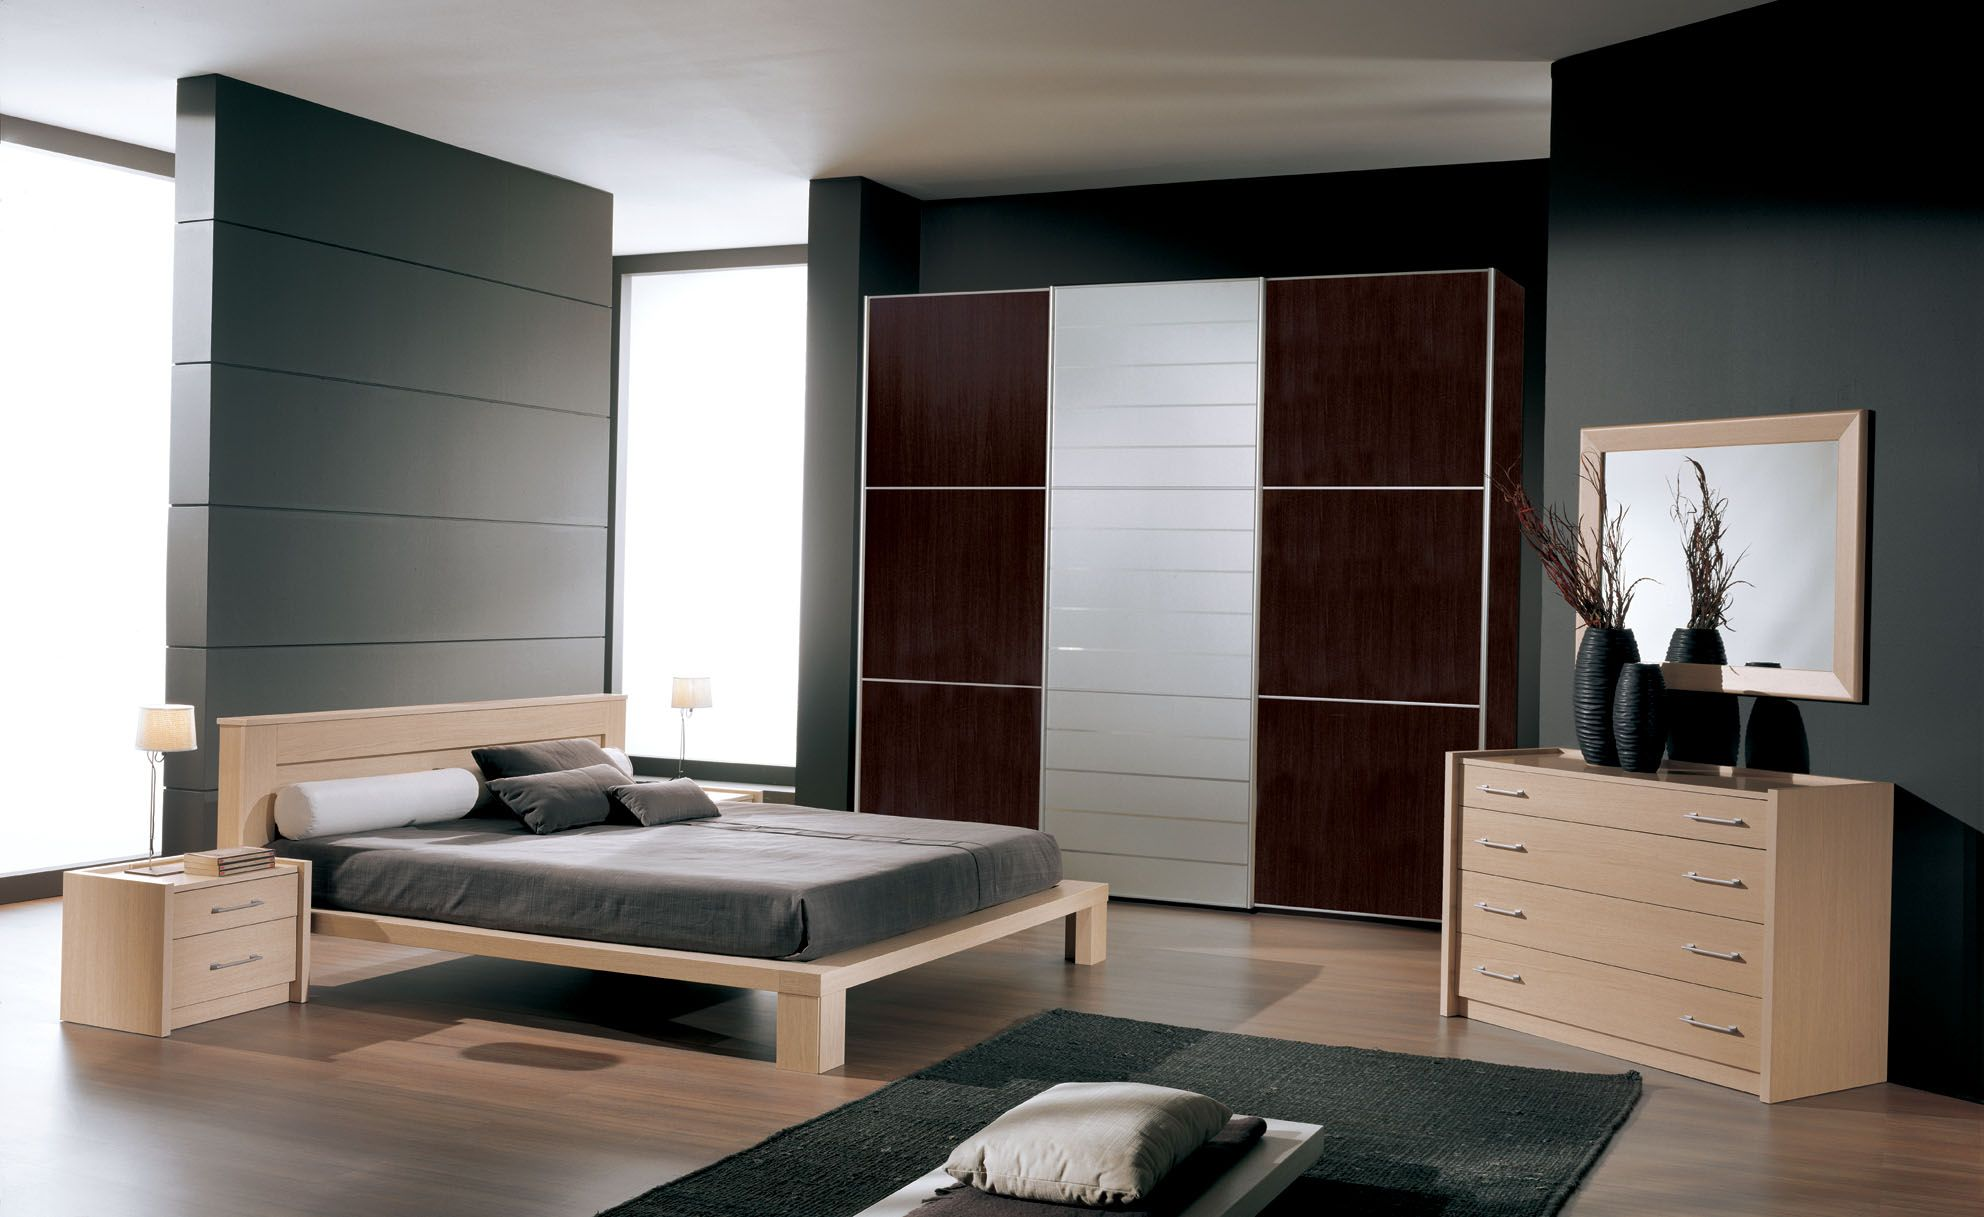 Bedroom Small Modern 3d Bedroom Layout Ideas For Square Rooms With